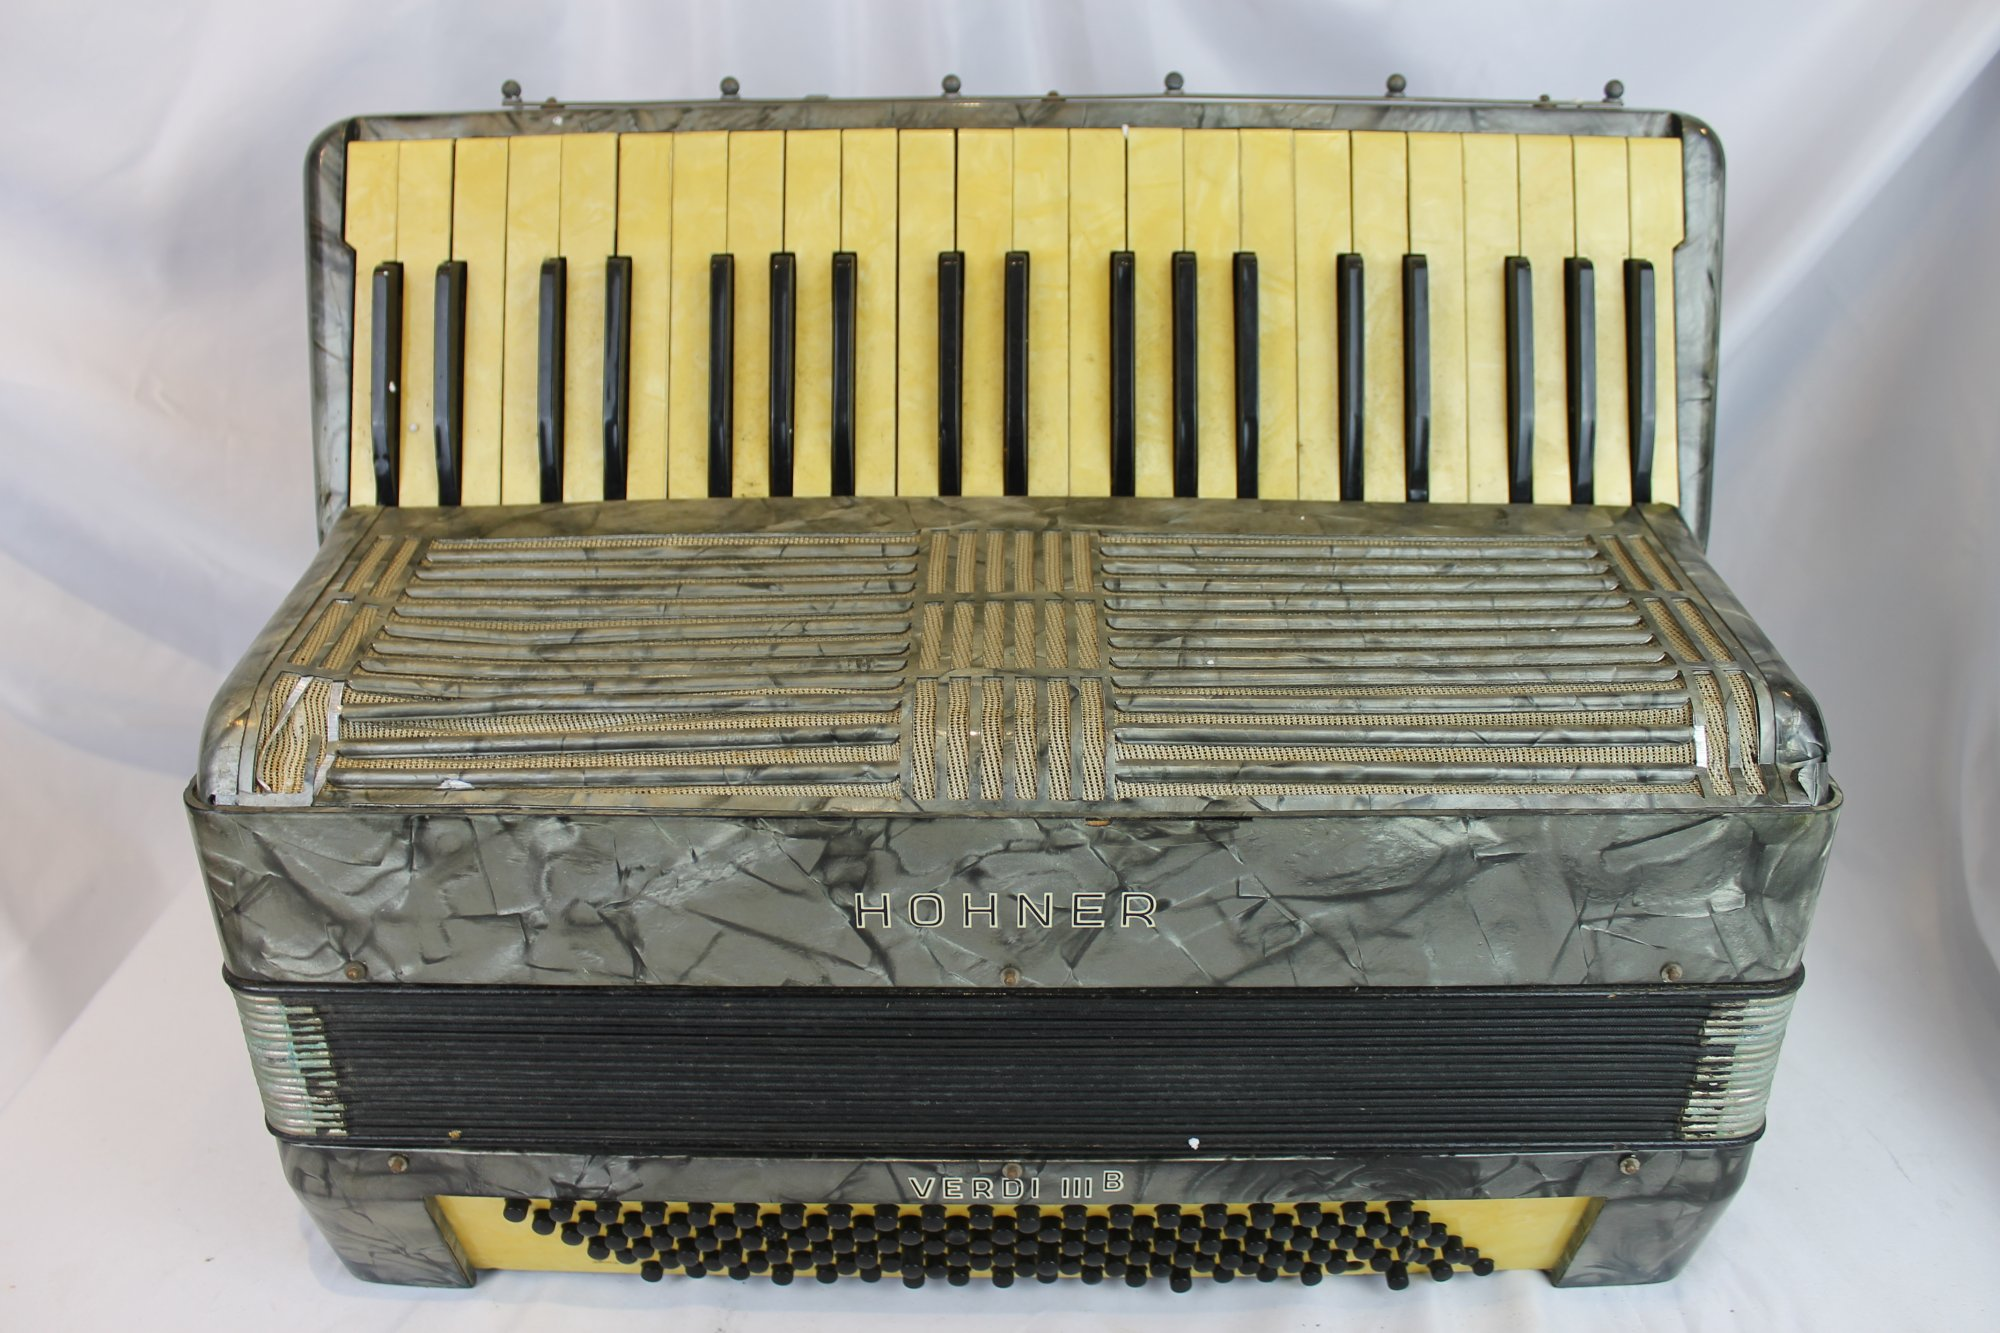 4528 - Slate Hohner Verdi IIIB Piano Accordion 41 120 - For Parts or Repair